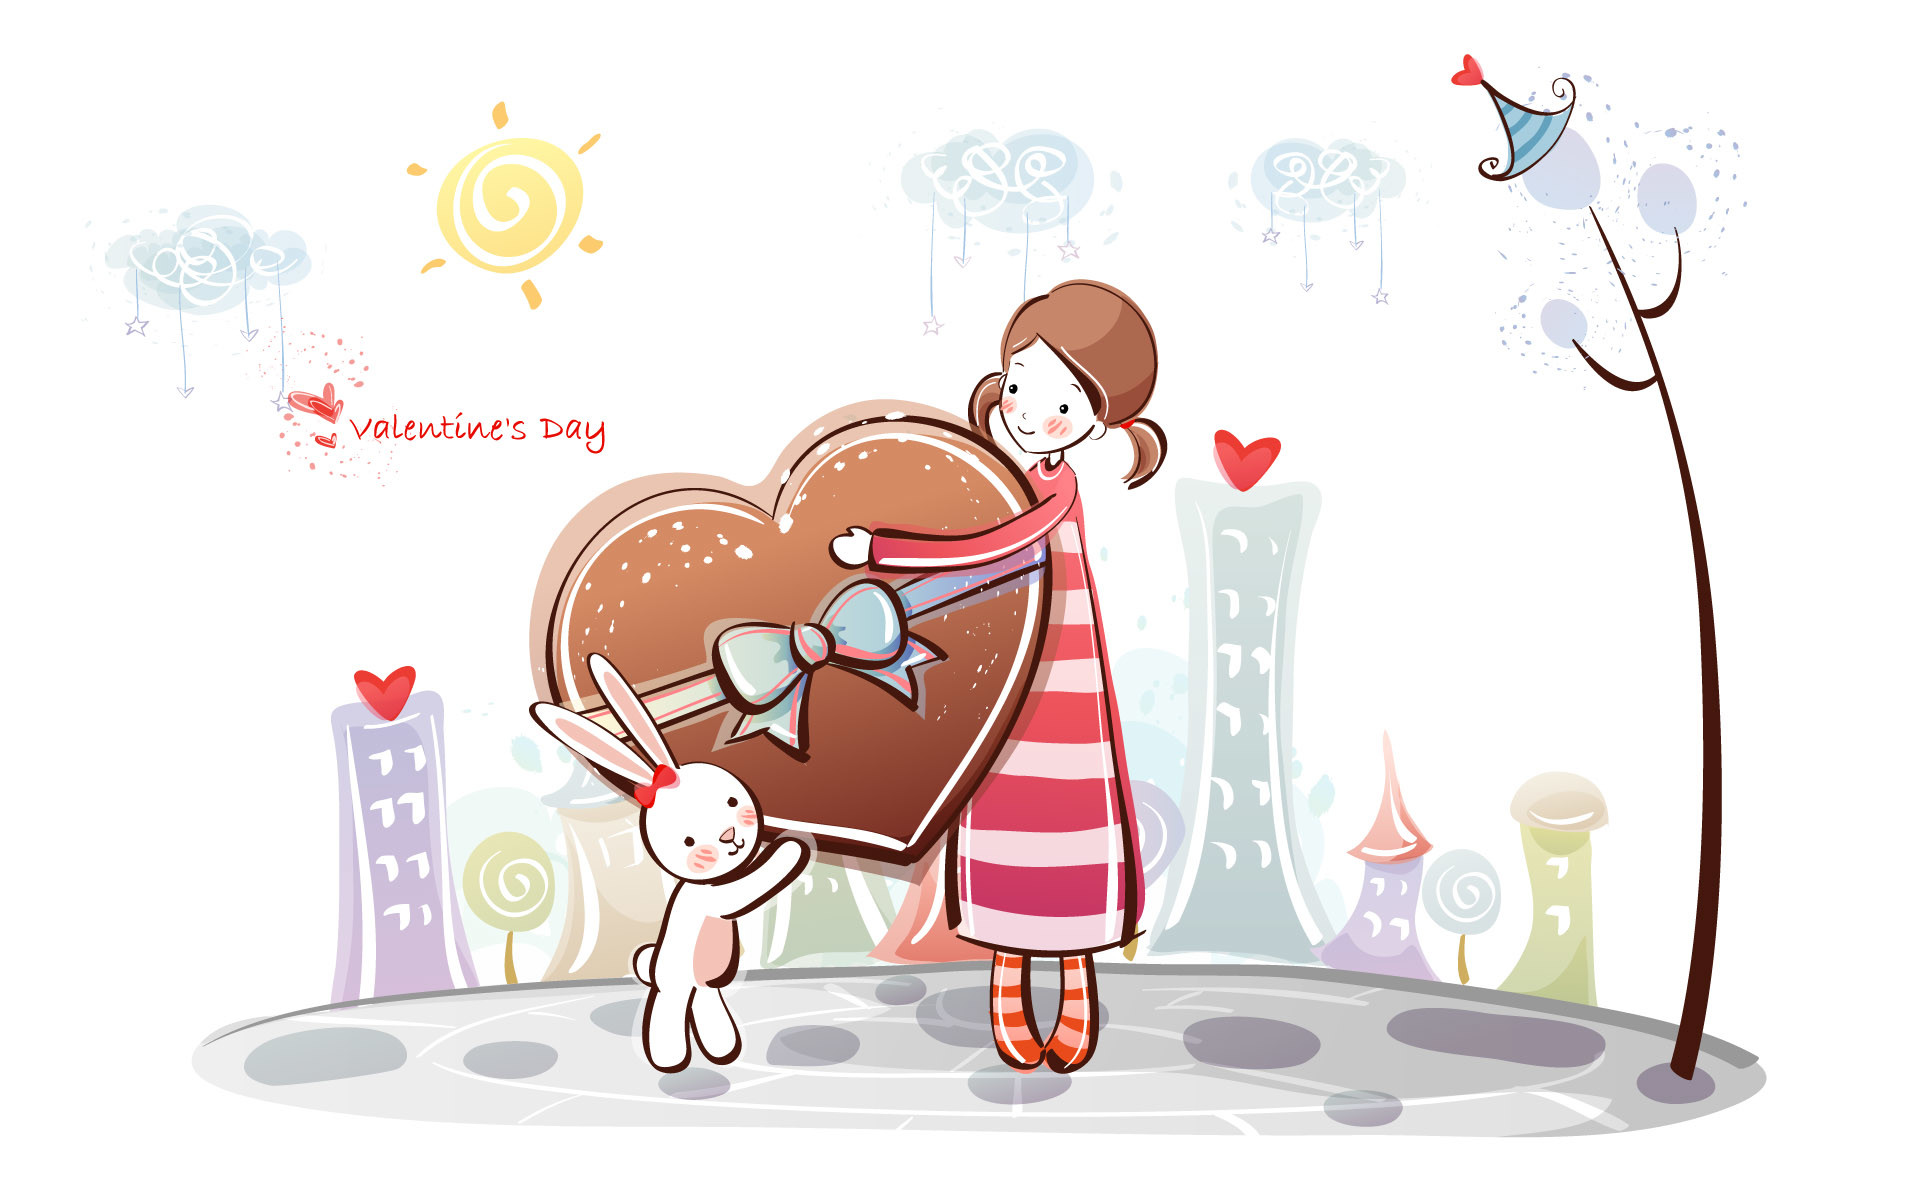 1920x1200 Cute Couple Reading Valentines Day Letters. | Romantic Valentine's Day  Wallpapers | Pinterest | Wallpaper